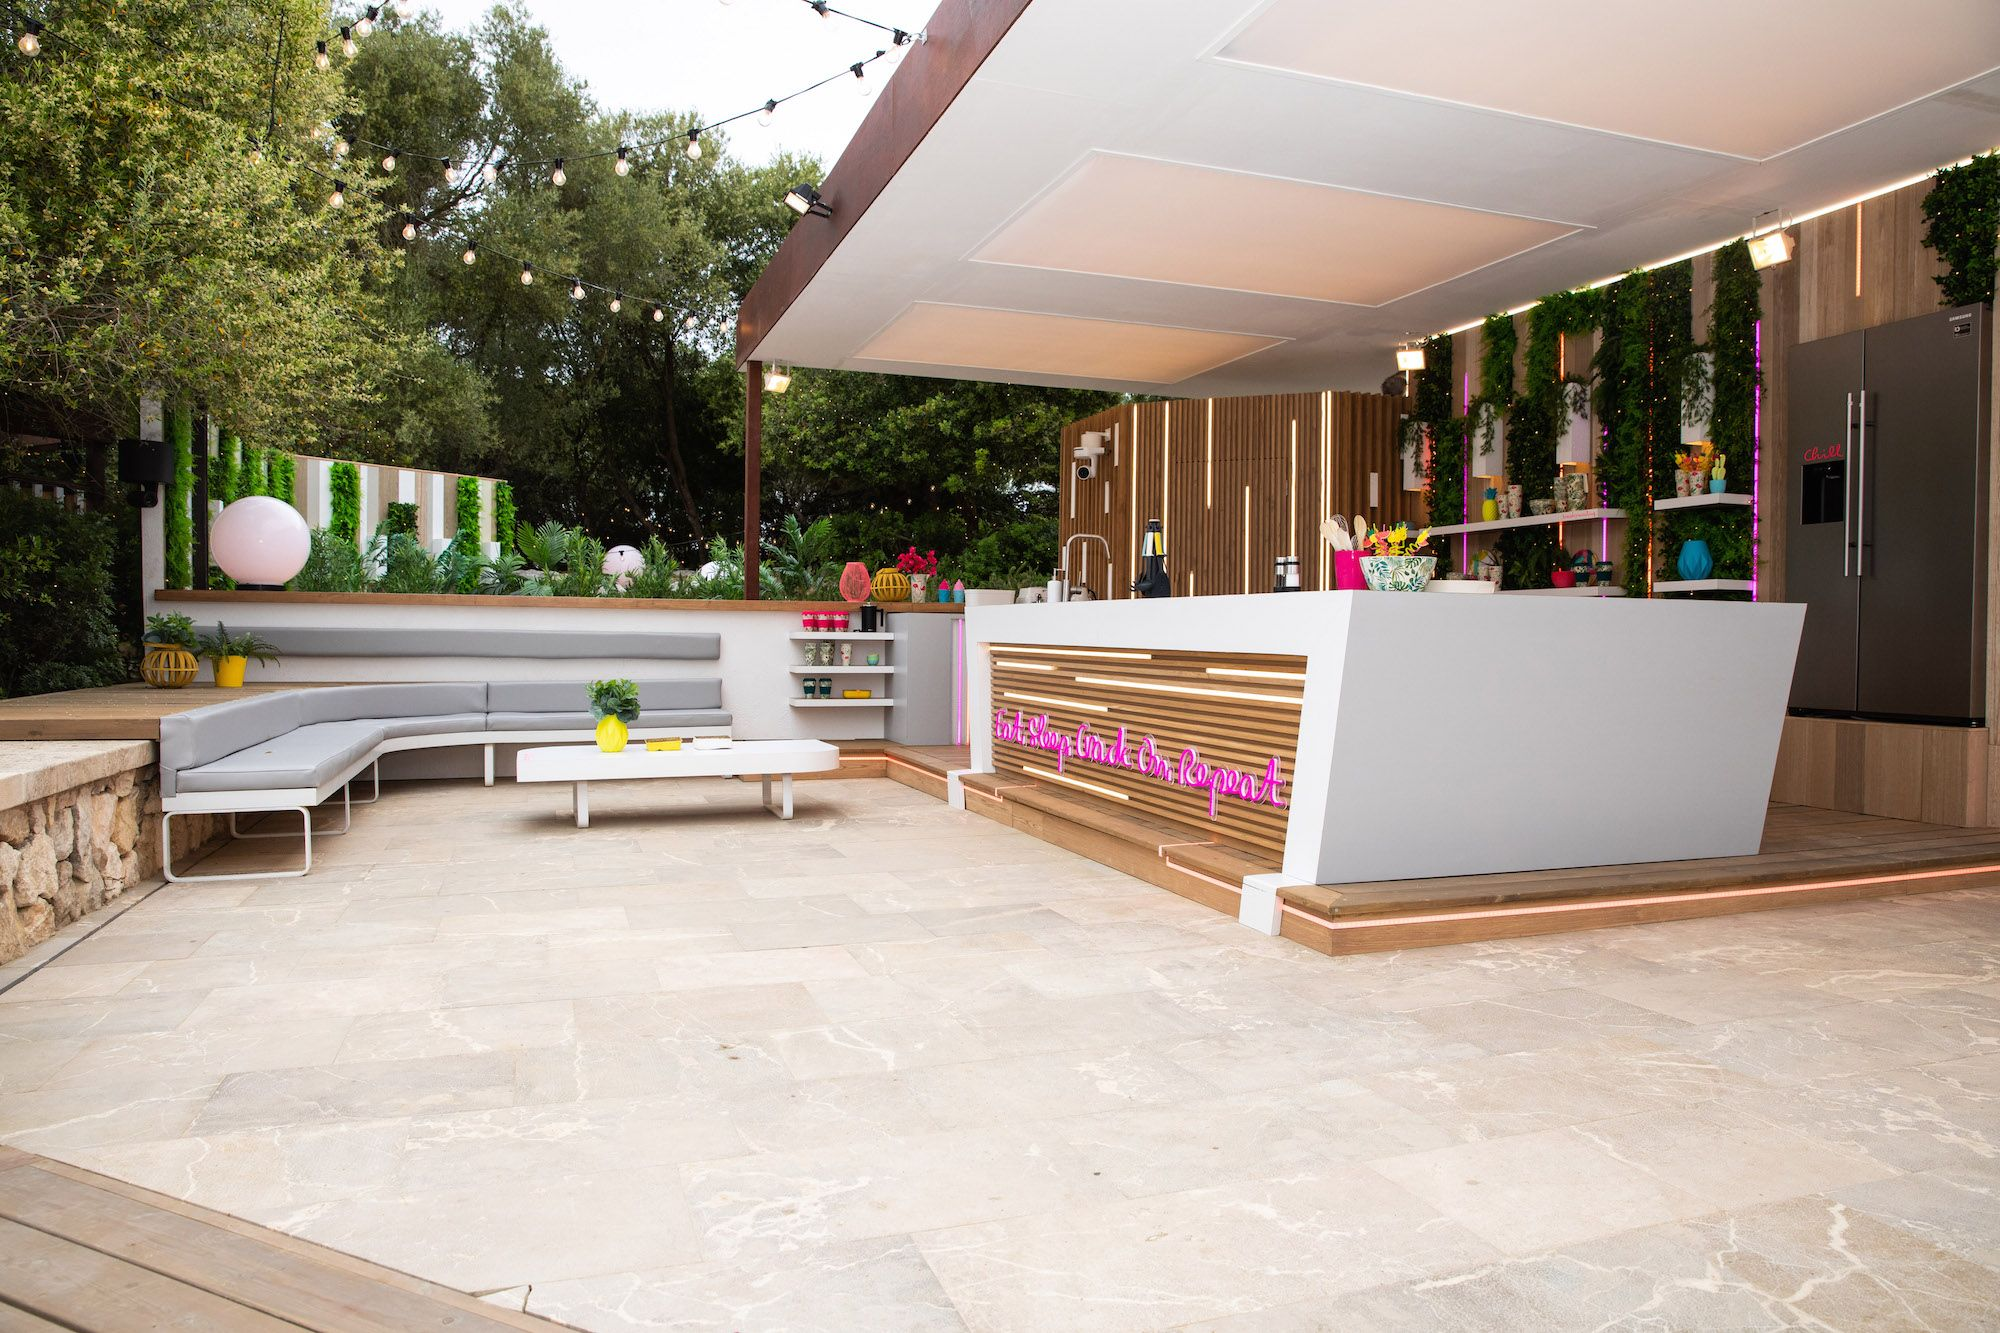 Image may contain: Love Island villa, Love Island, 2019, location, Sant Llorenç des Cardassar, Wood, Couch, Human, Person, Flooring, Reception, Table, Furniture